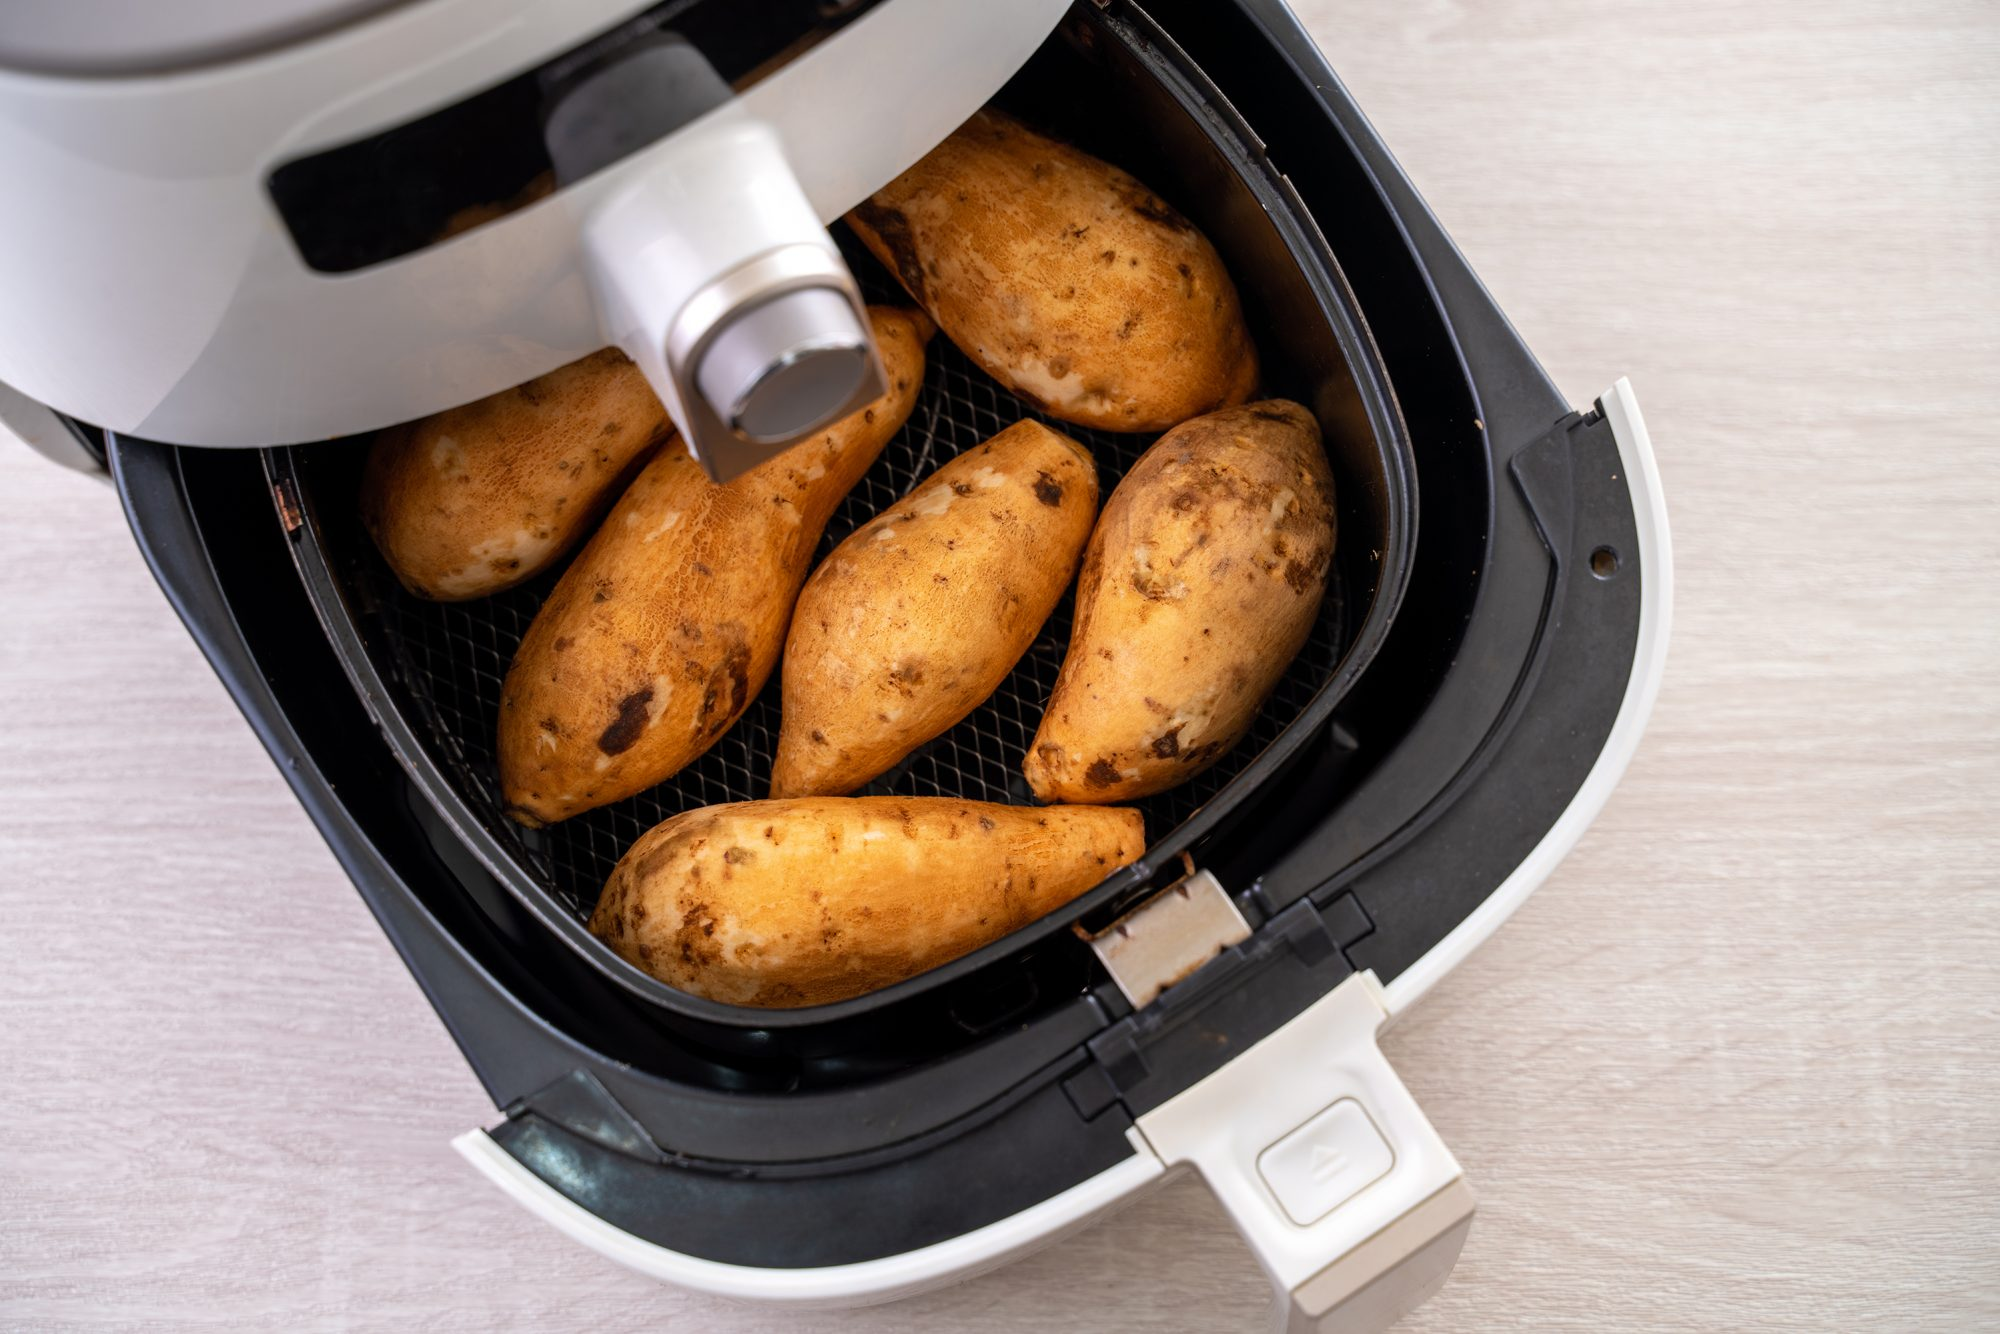 Roasted sweet potato cooked by airfryer at home